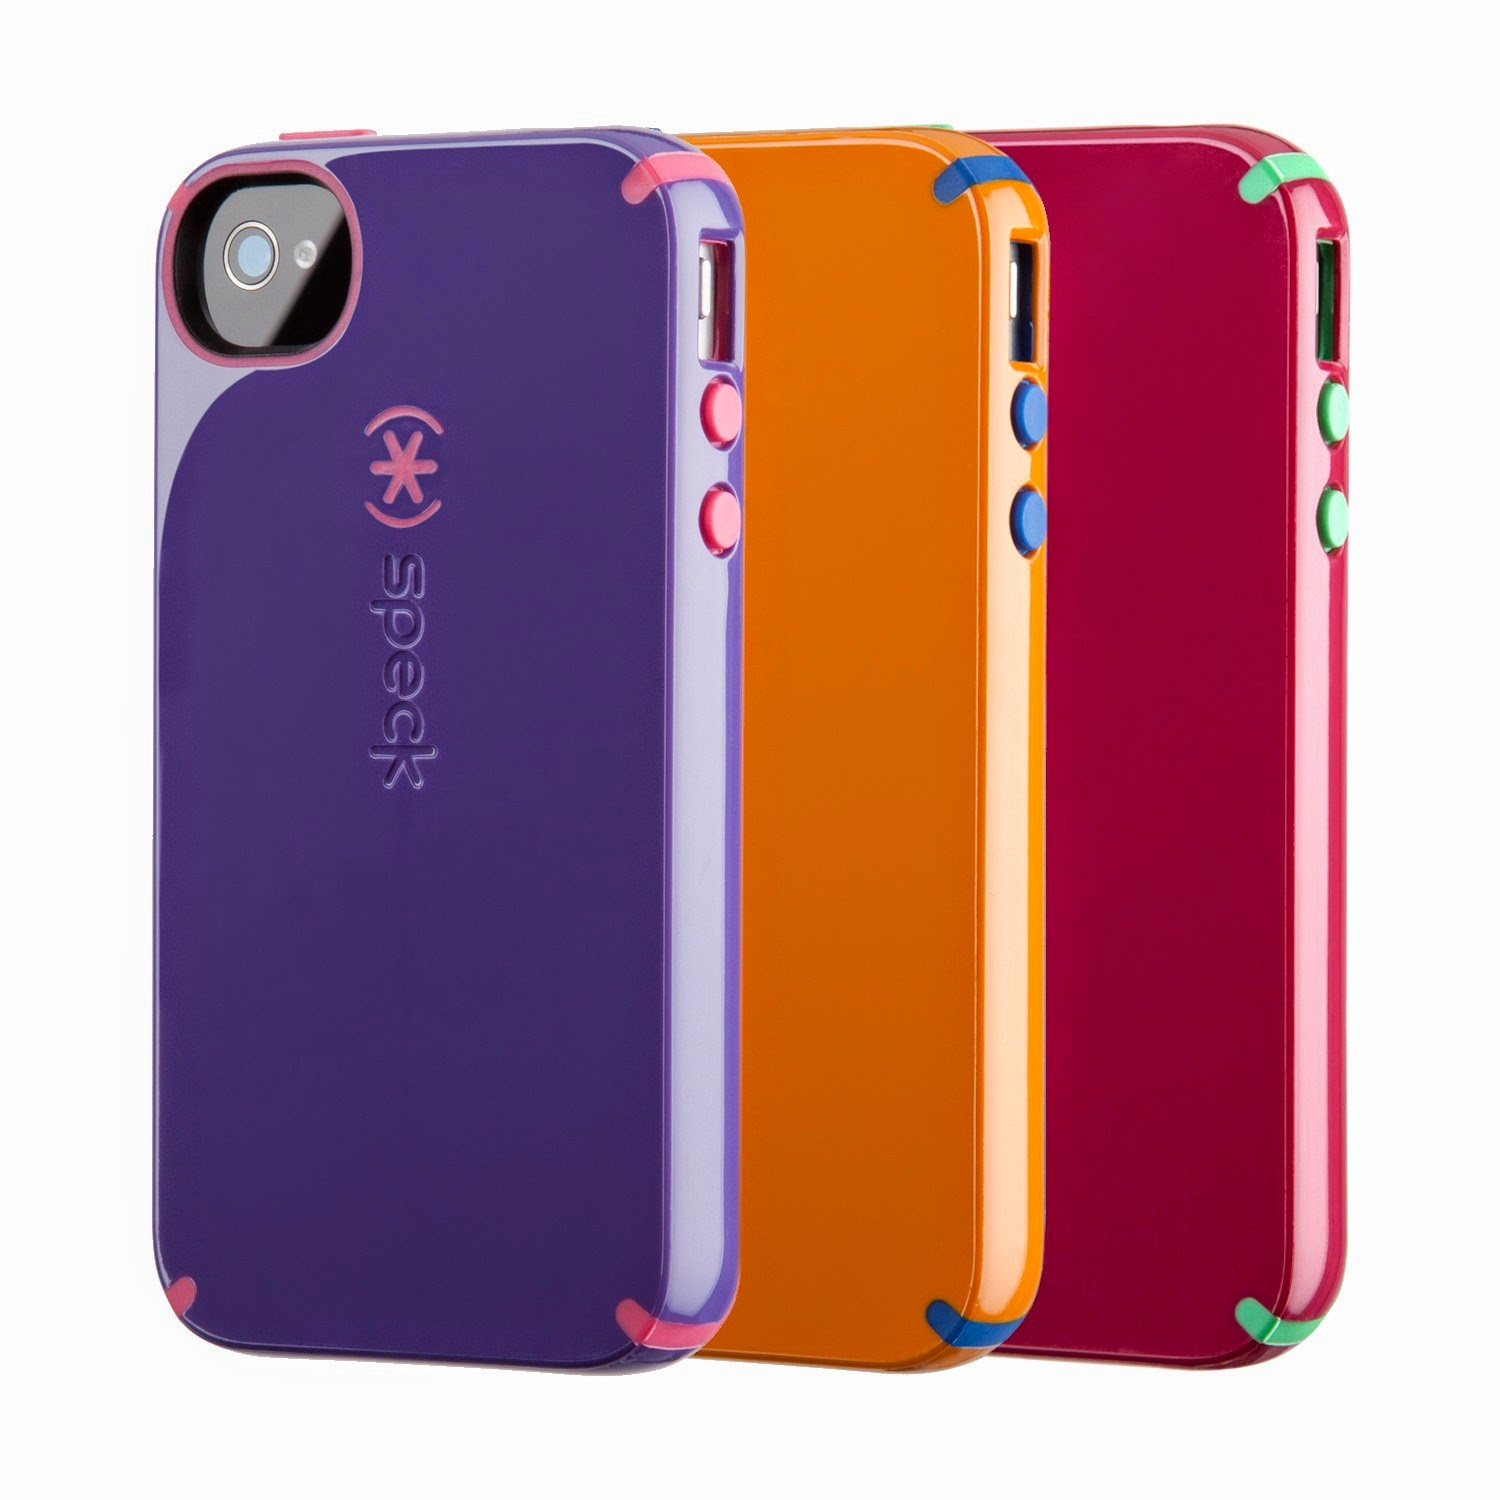 according to ame }: PRODUCT REVIEW: Speck Candyshell iPhone 4 case